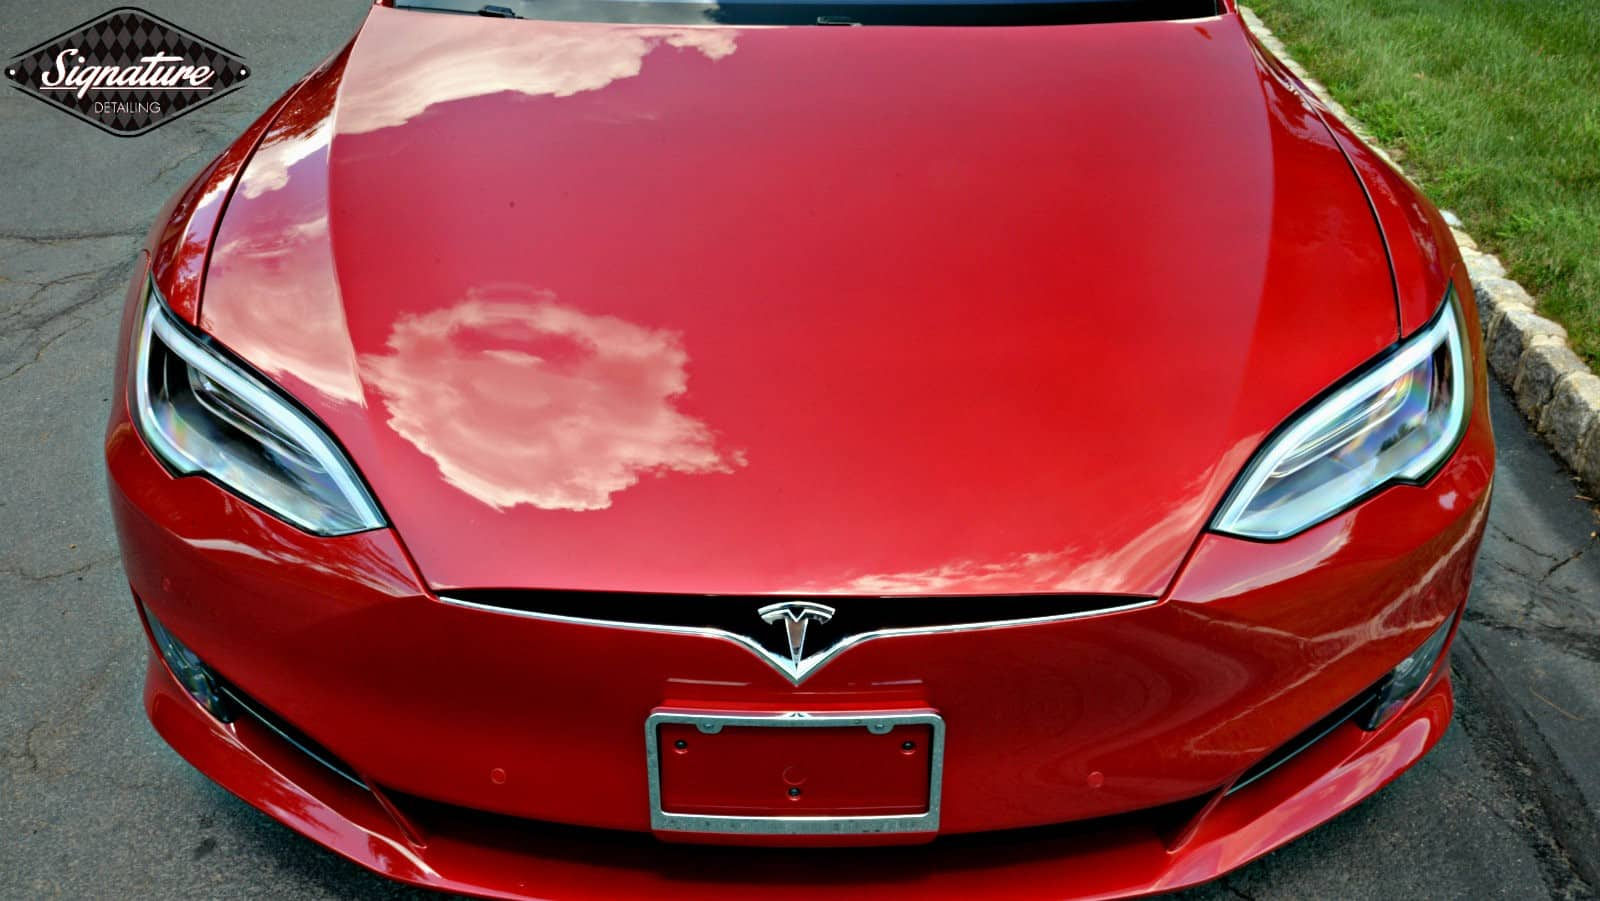 Full front end protection for this Tesla Model S, installed by Signature Detailing NYC